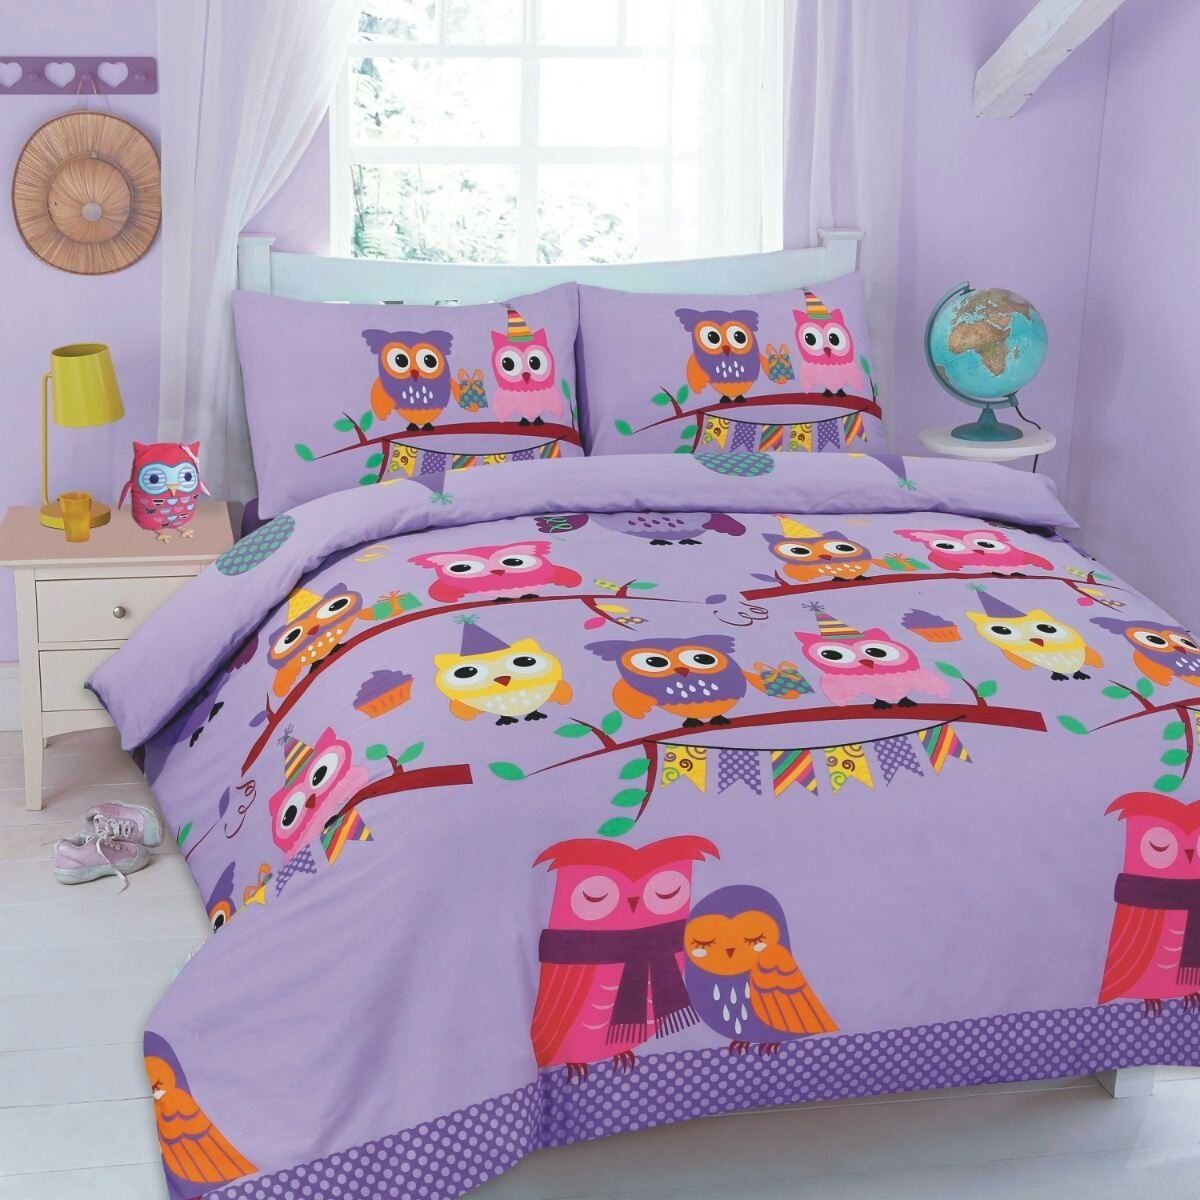 ae86a197c599 Cute Owls Single Lilac Bed Duvet Cover Set & Pillowcase Bed Set Bedding,  Owls, Cute Birds, Childrens & Kids: Amazon.co.uk: Kitchen & Home